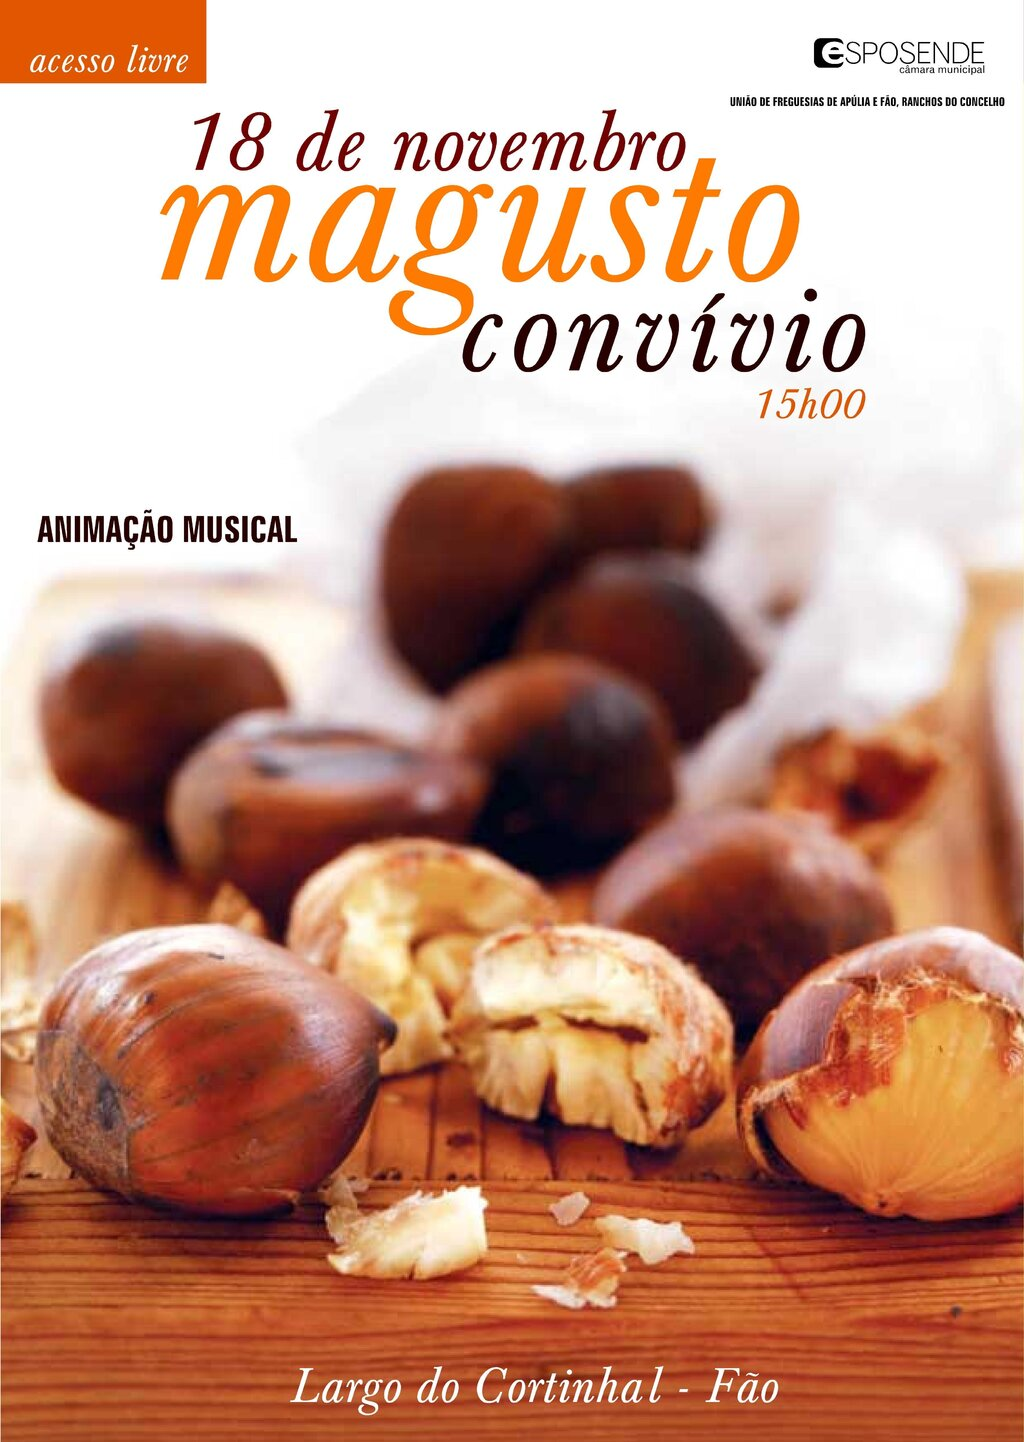 Magusto 1 1024 2500